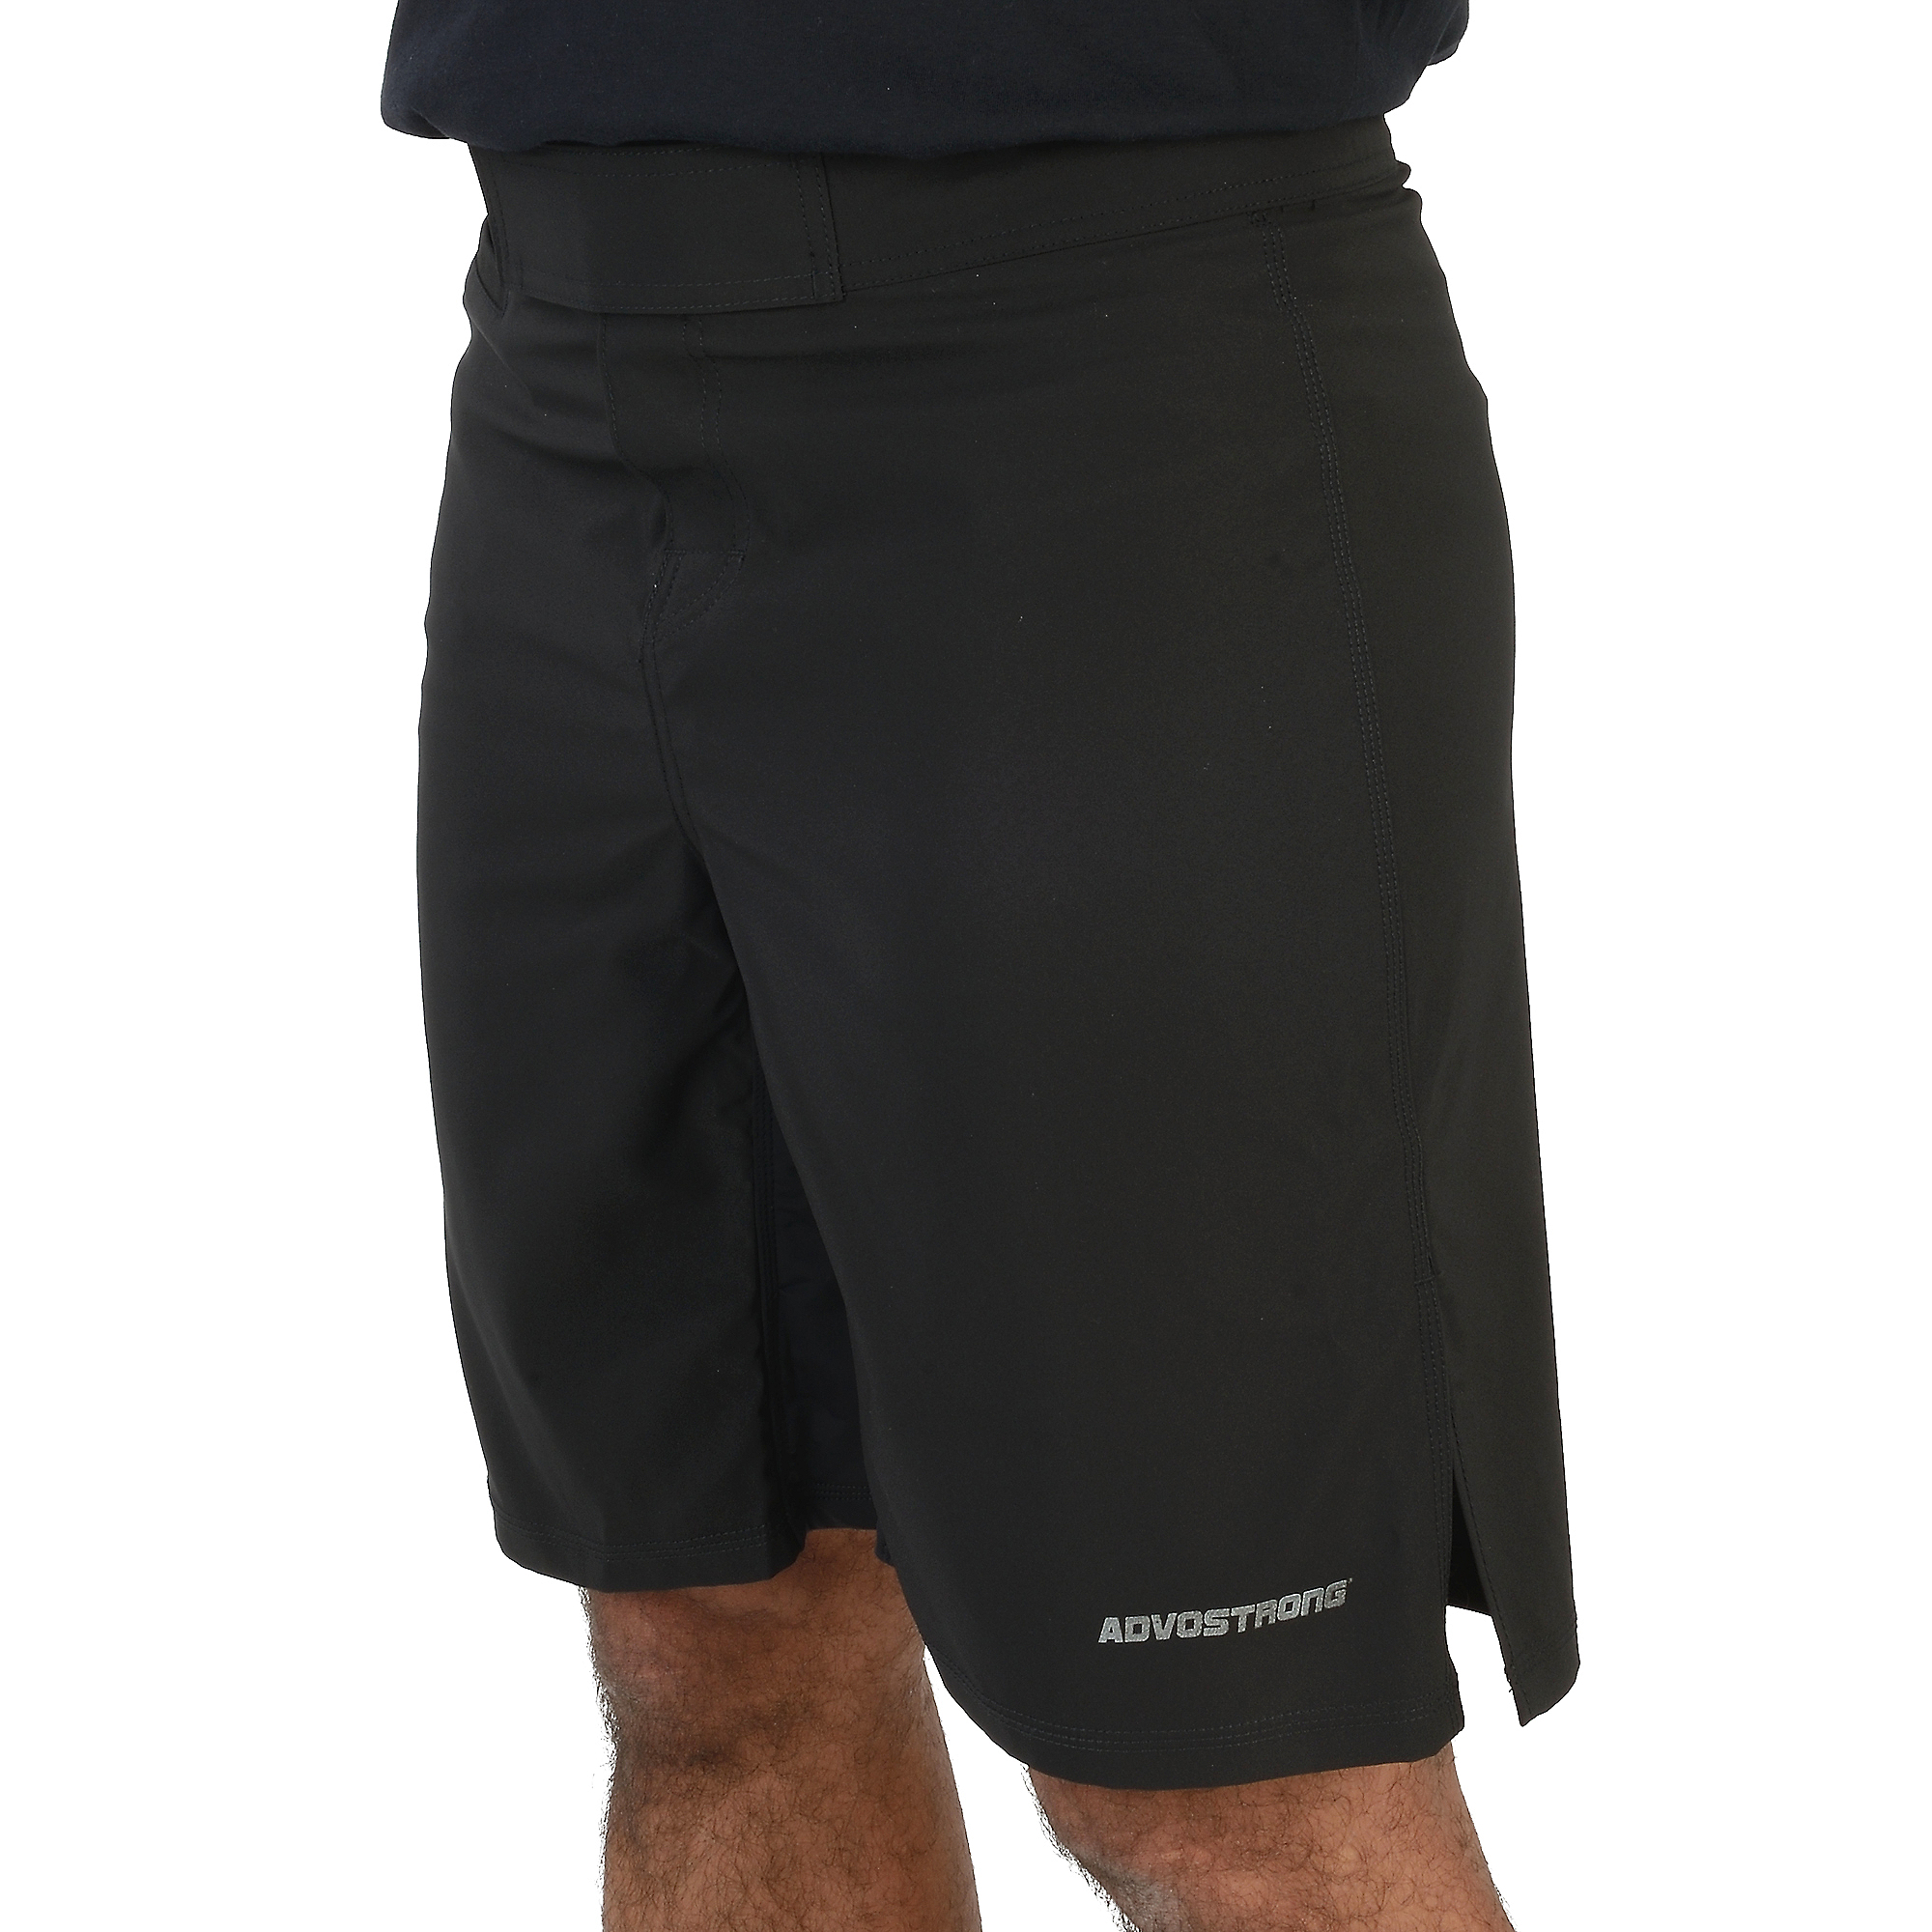 AdvoCare Cross Training Shorts